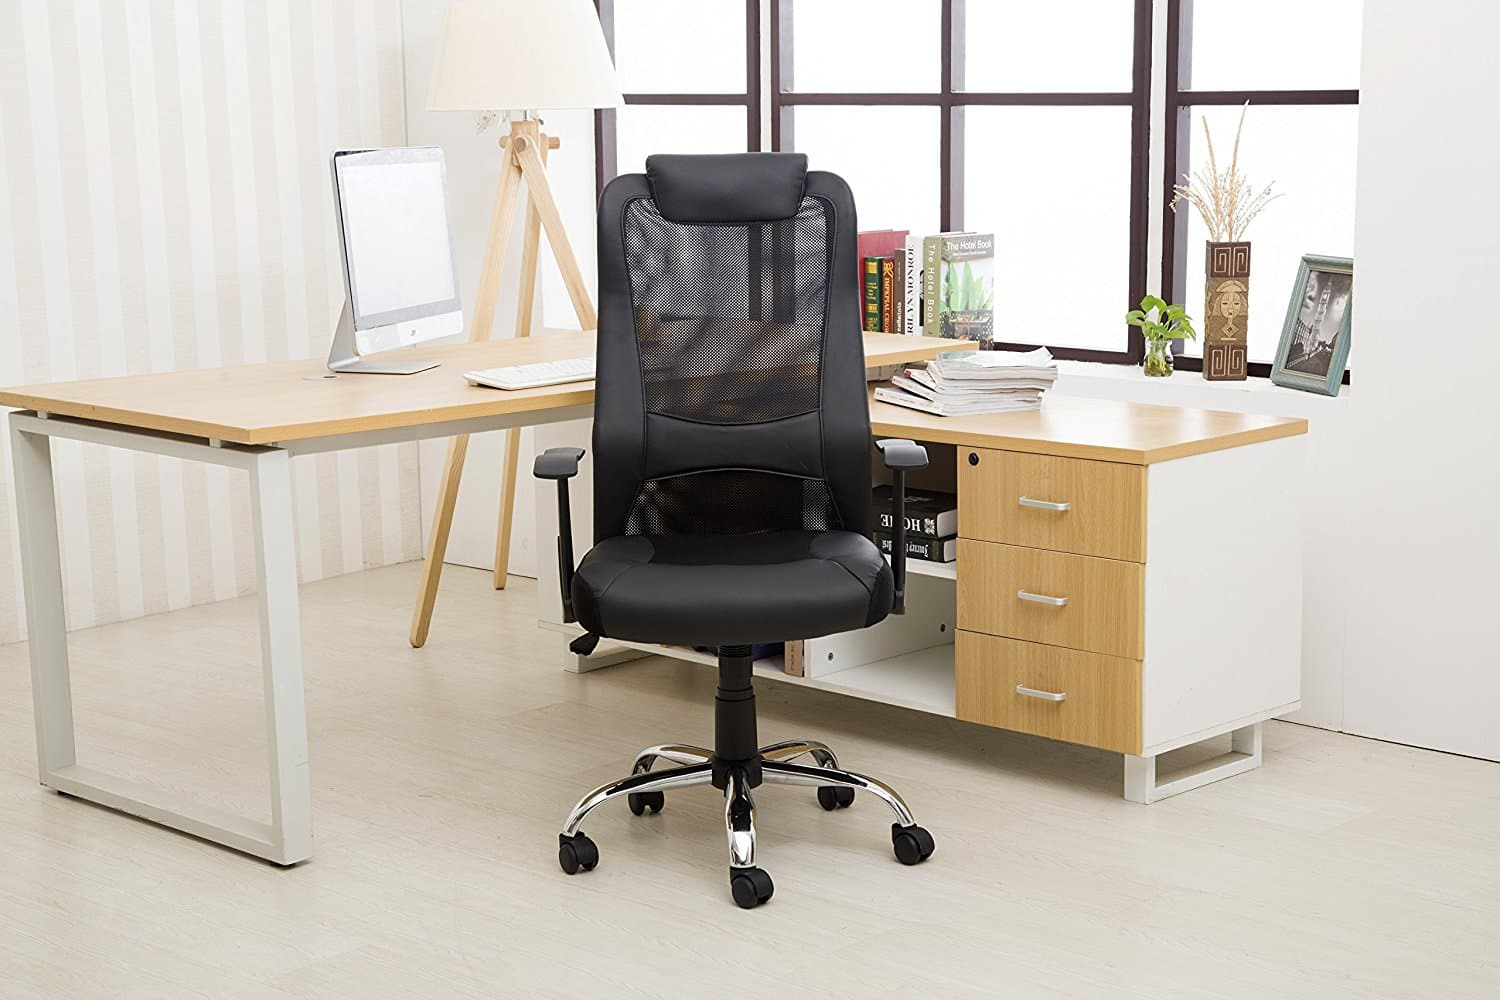 LCH High Back Black Executive Chair with  Leather Seat and Headrest and adjustable armrests $105.99